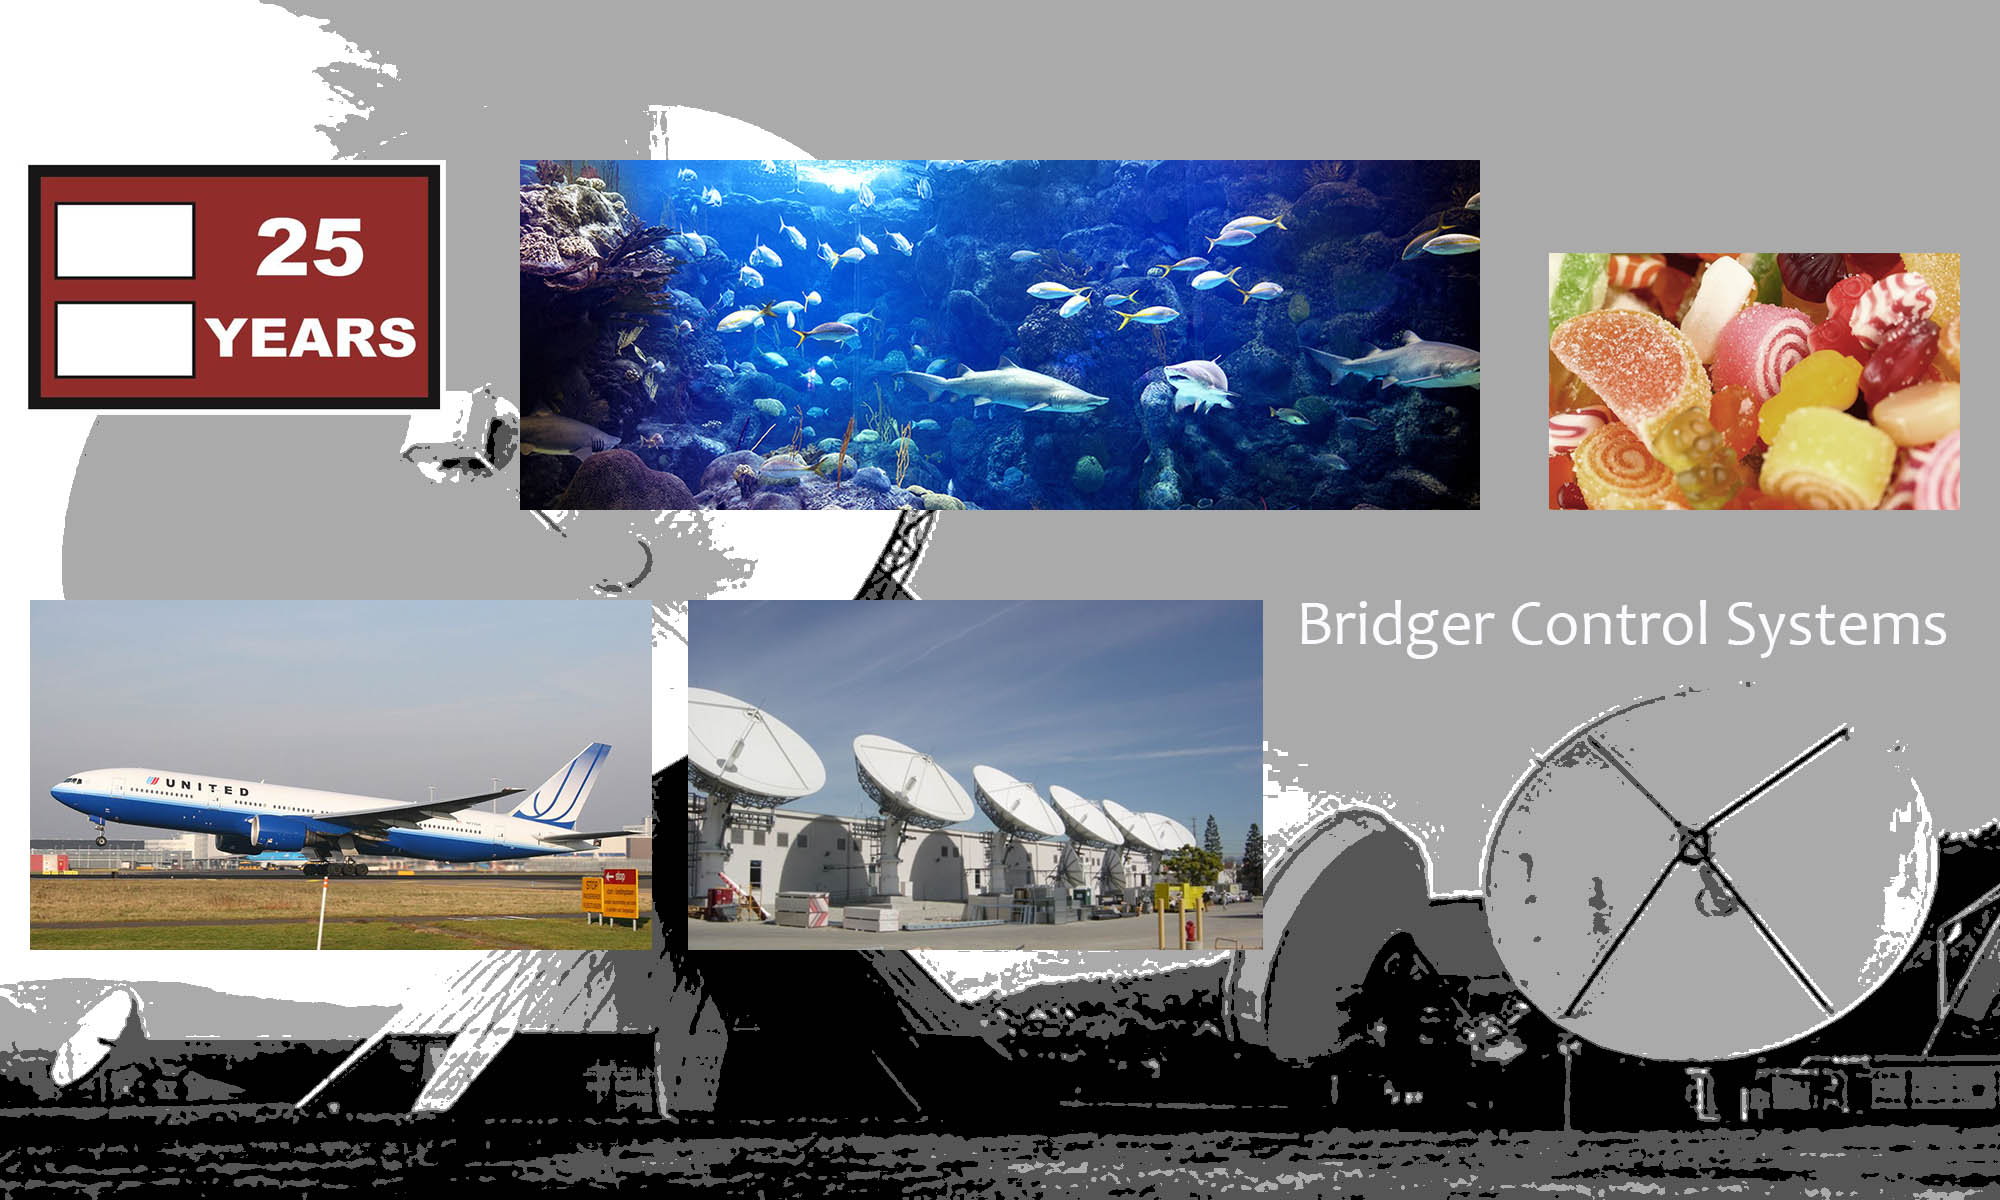 Bridger Control Systems